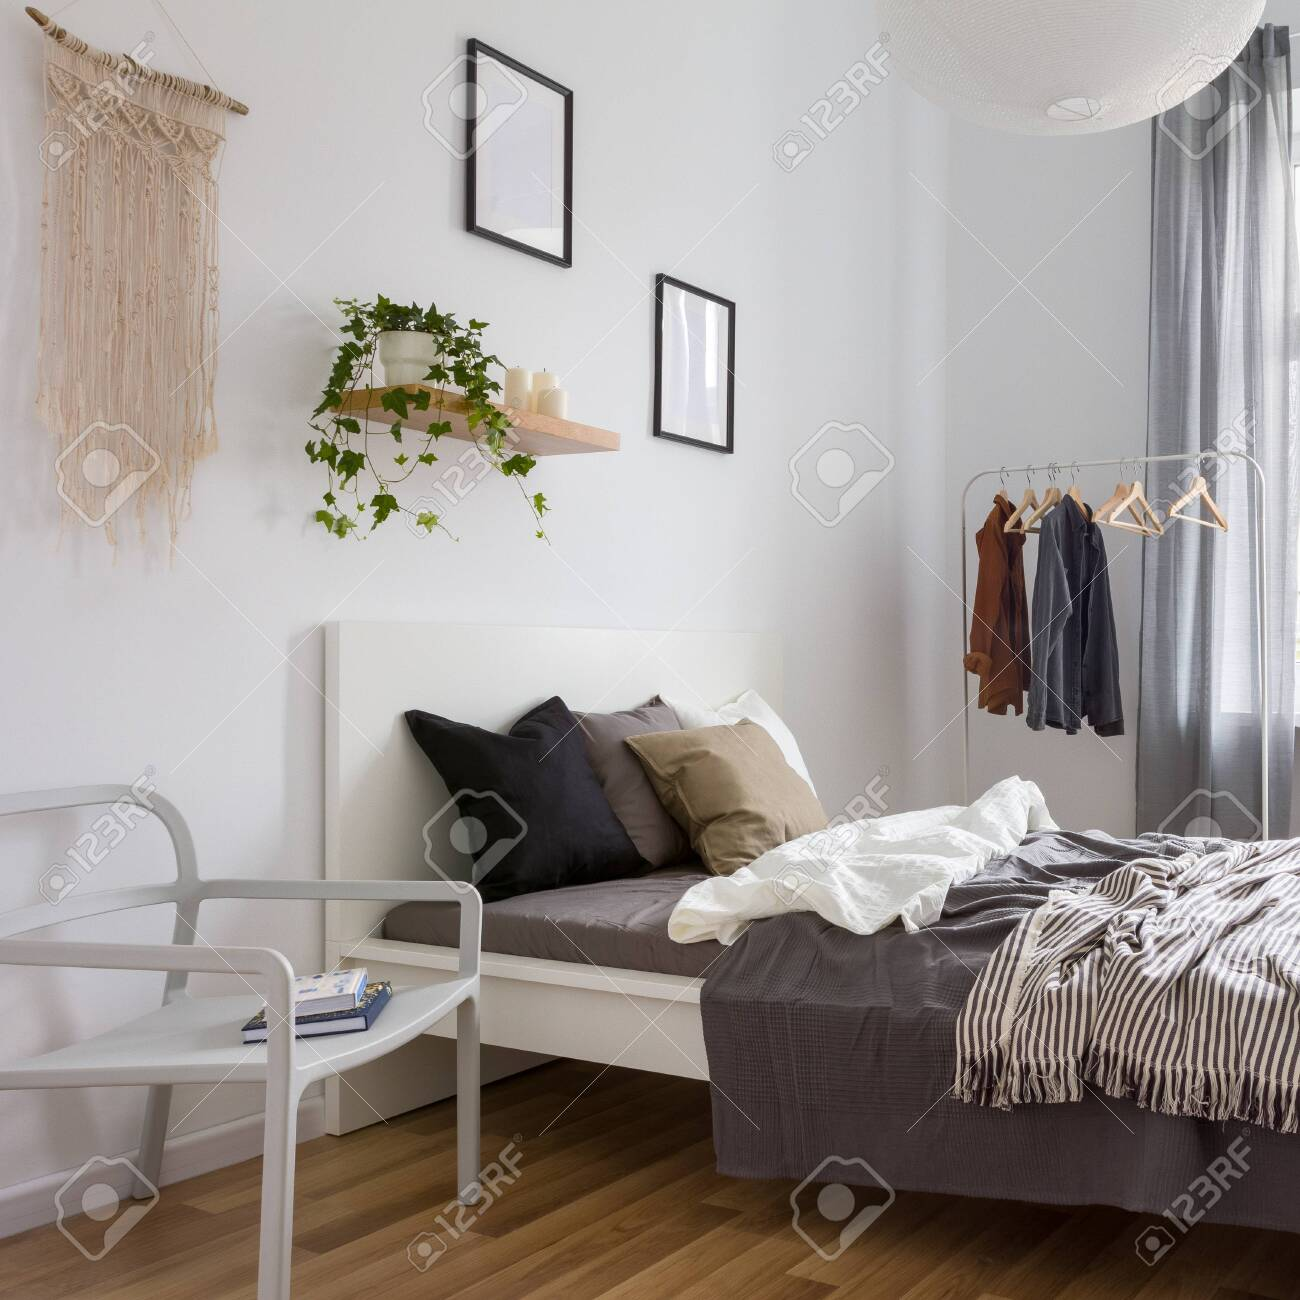 simple bedroom with double bed clothes rack and wall decoration stock photo picture and royalty free image image 128424193